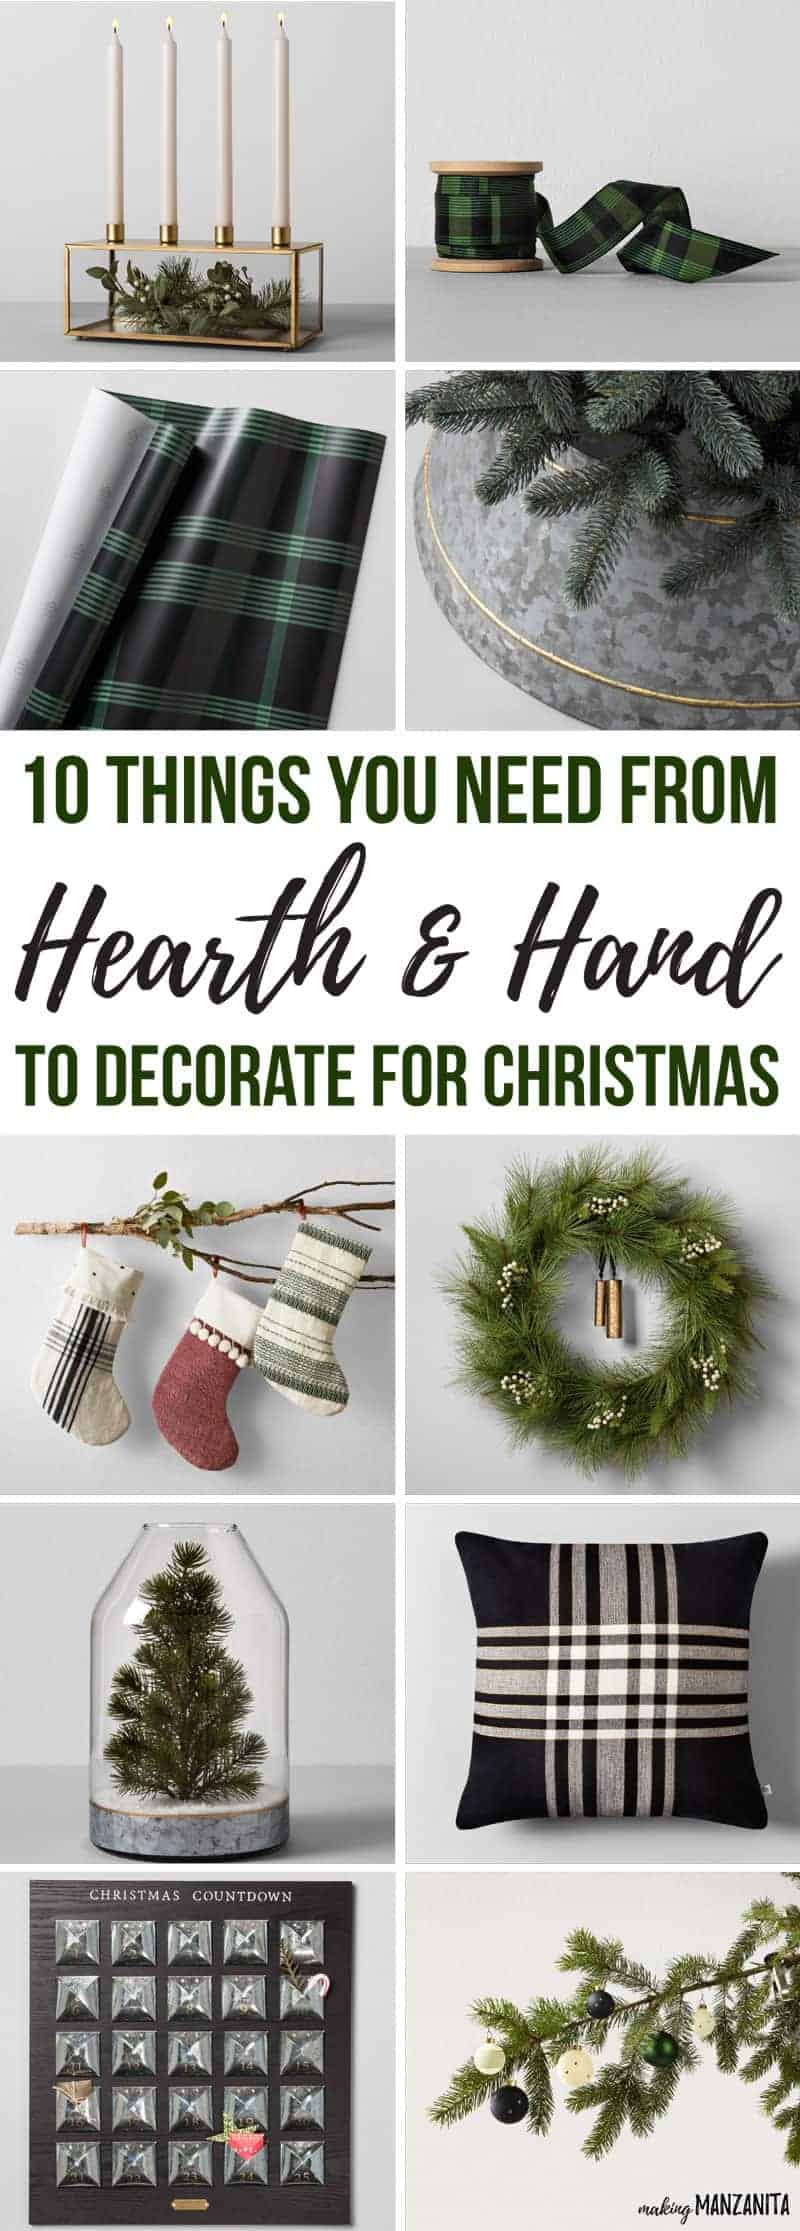 10 Things You Need From Hearth and Hand to Decorate for Christmas | Hearth & Hand with Magonolia at Target | Chip and Joanna Gaines new home decor line sold at Target | Decorating for Christmas on a budget in your living room | Modern farmhouse Christmas tree | Black and white holiday decor ideas for the kitchen | Green plaid ribbon and wrapping paper | Minimalist Gold candle holder | Galvanized tree skirt | Farmhouse style stockings | Wreath with bell | Mini tree in vase | Pillow | Christmas countdown calendar | Ornaments